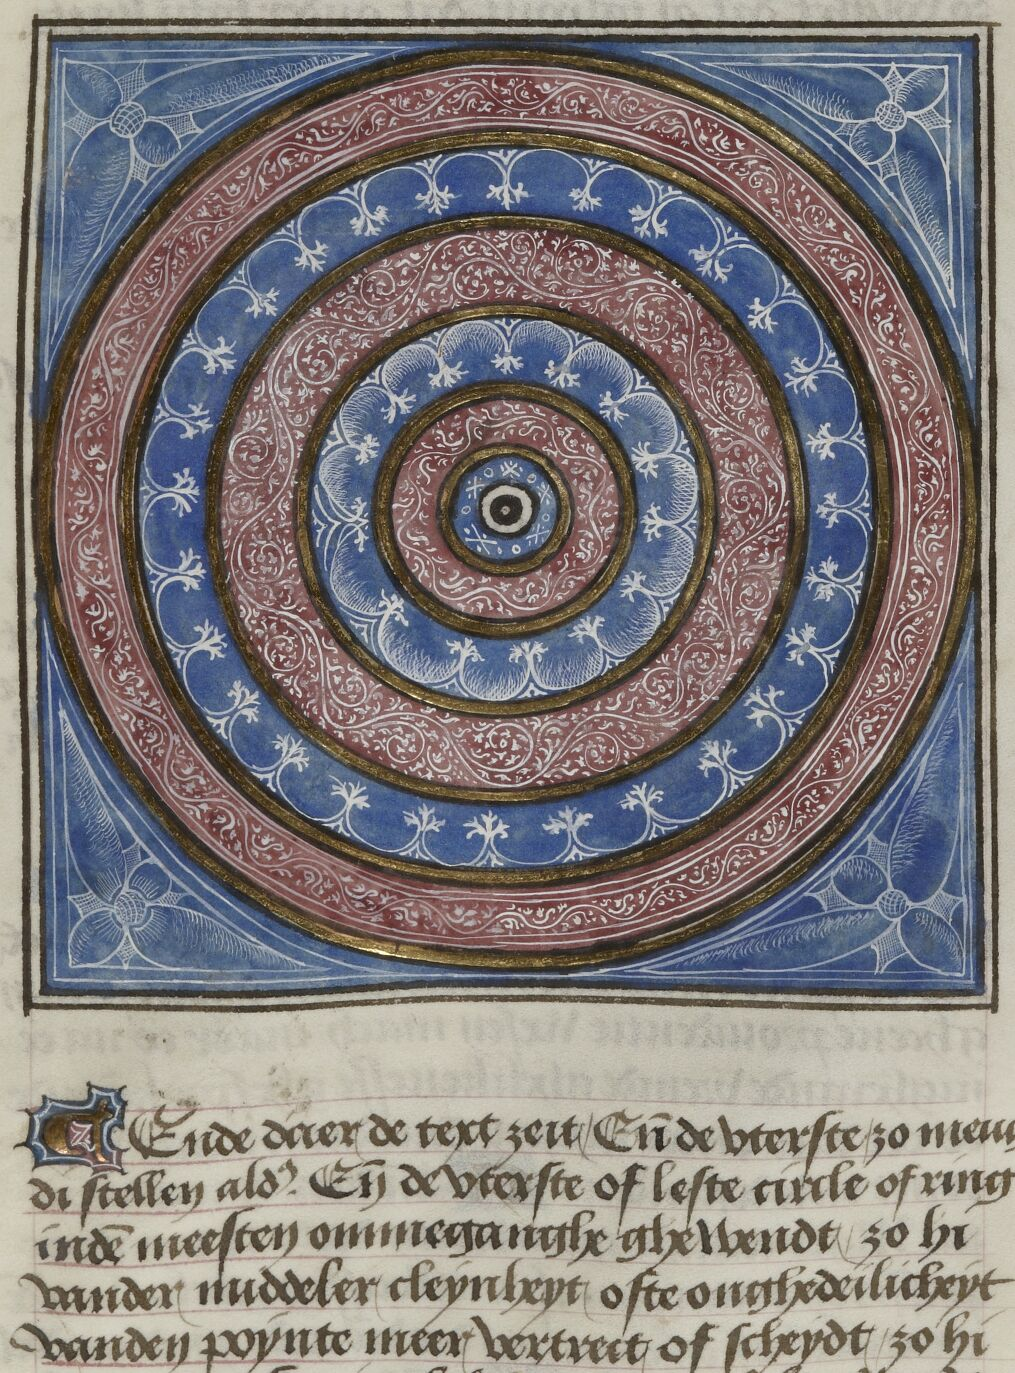 BNF N1, fol. 289v The Cosmos